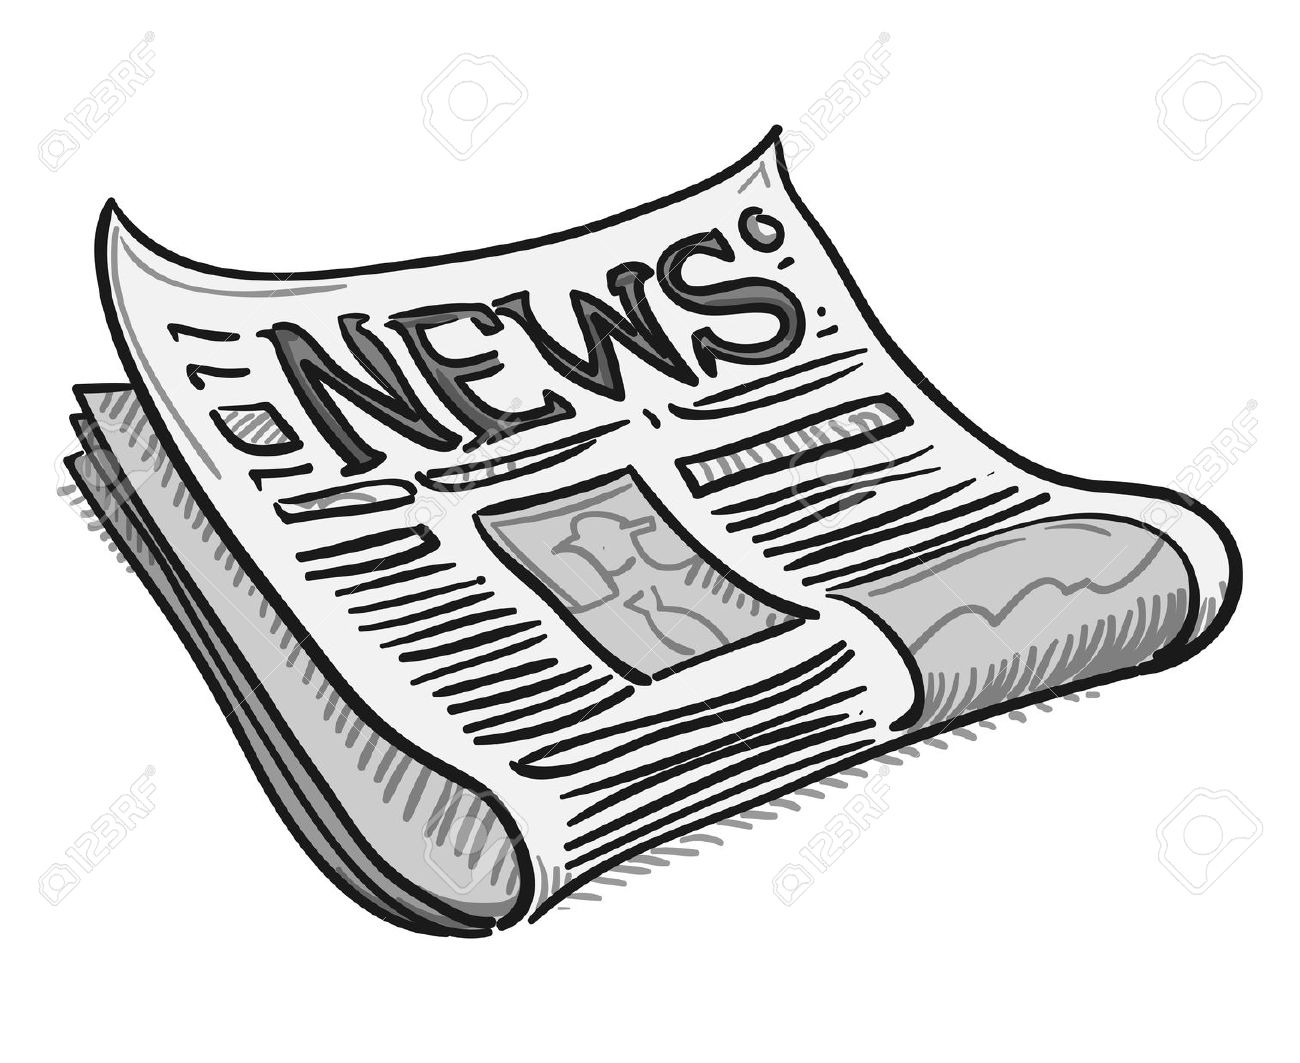 news clipart cartoon